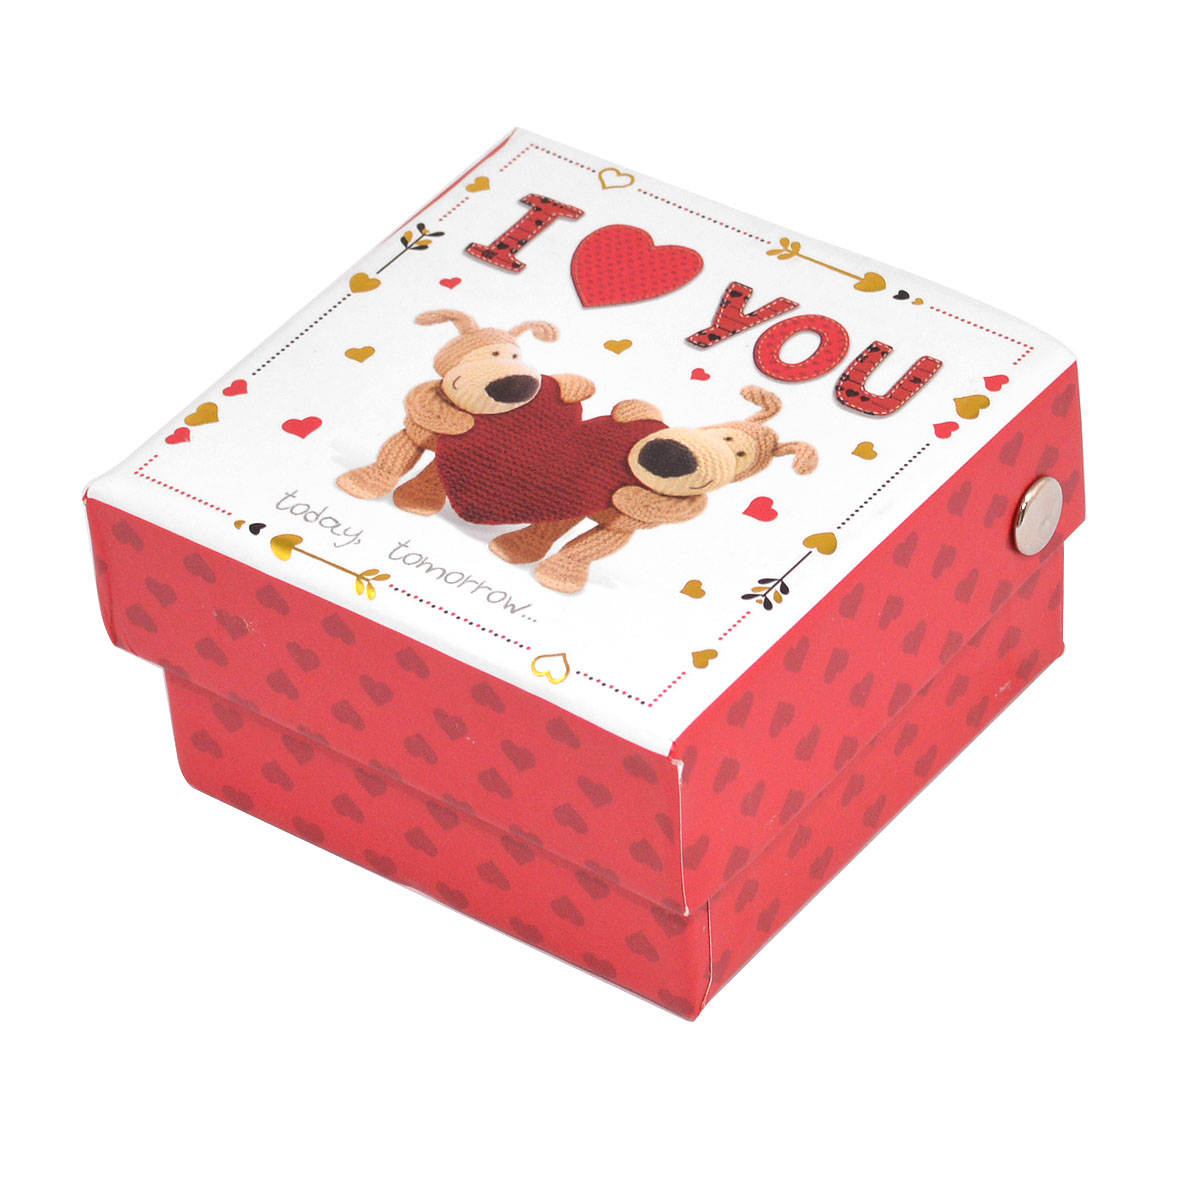 Boofle Ceramic I Love You Token In A Gift Box Valentine S Day Gift